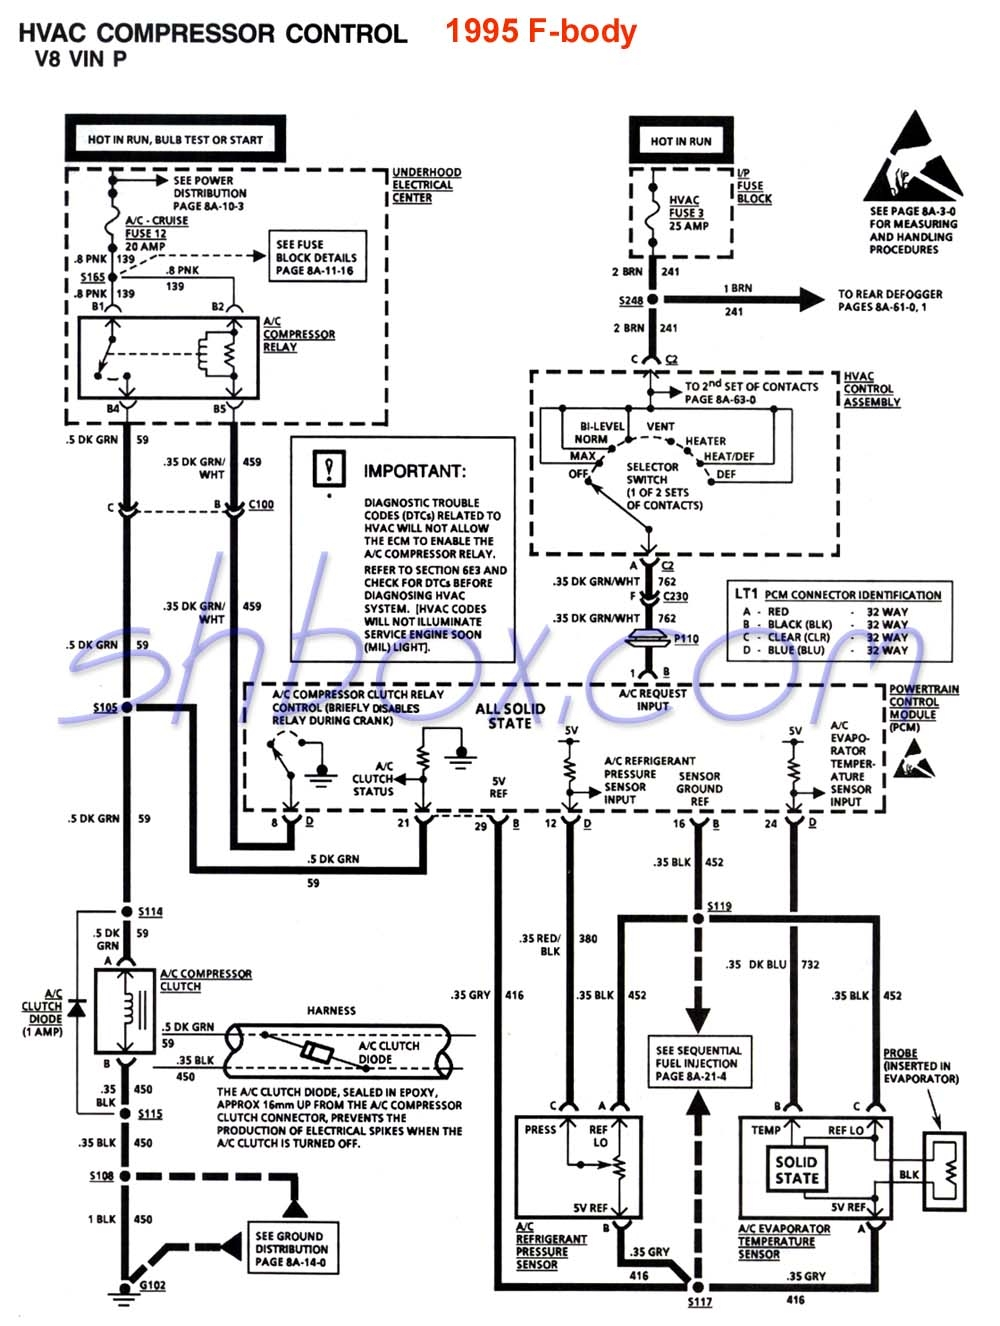 [DIAGRAM] Radio And Electric Choke Wiring U2026 Wiring